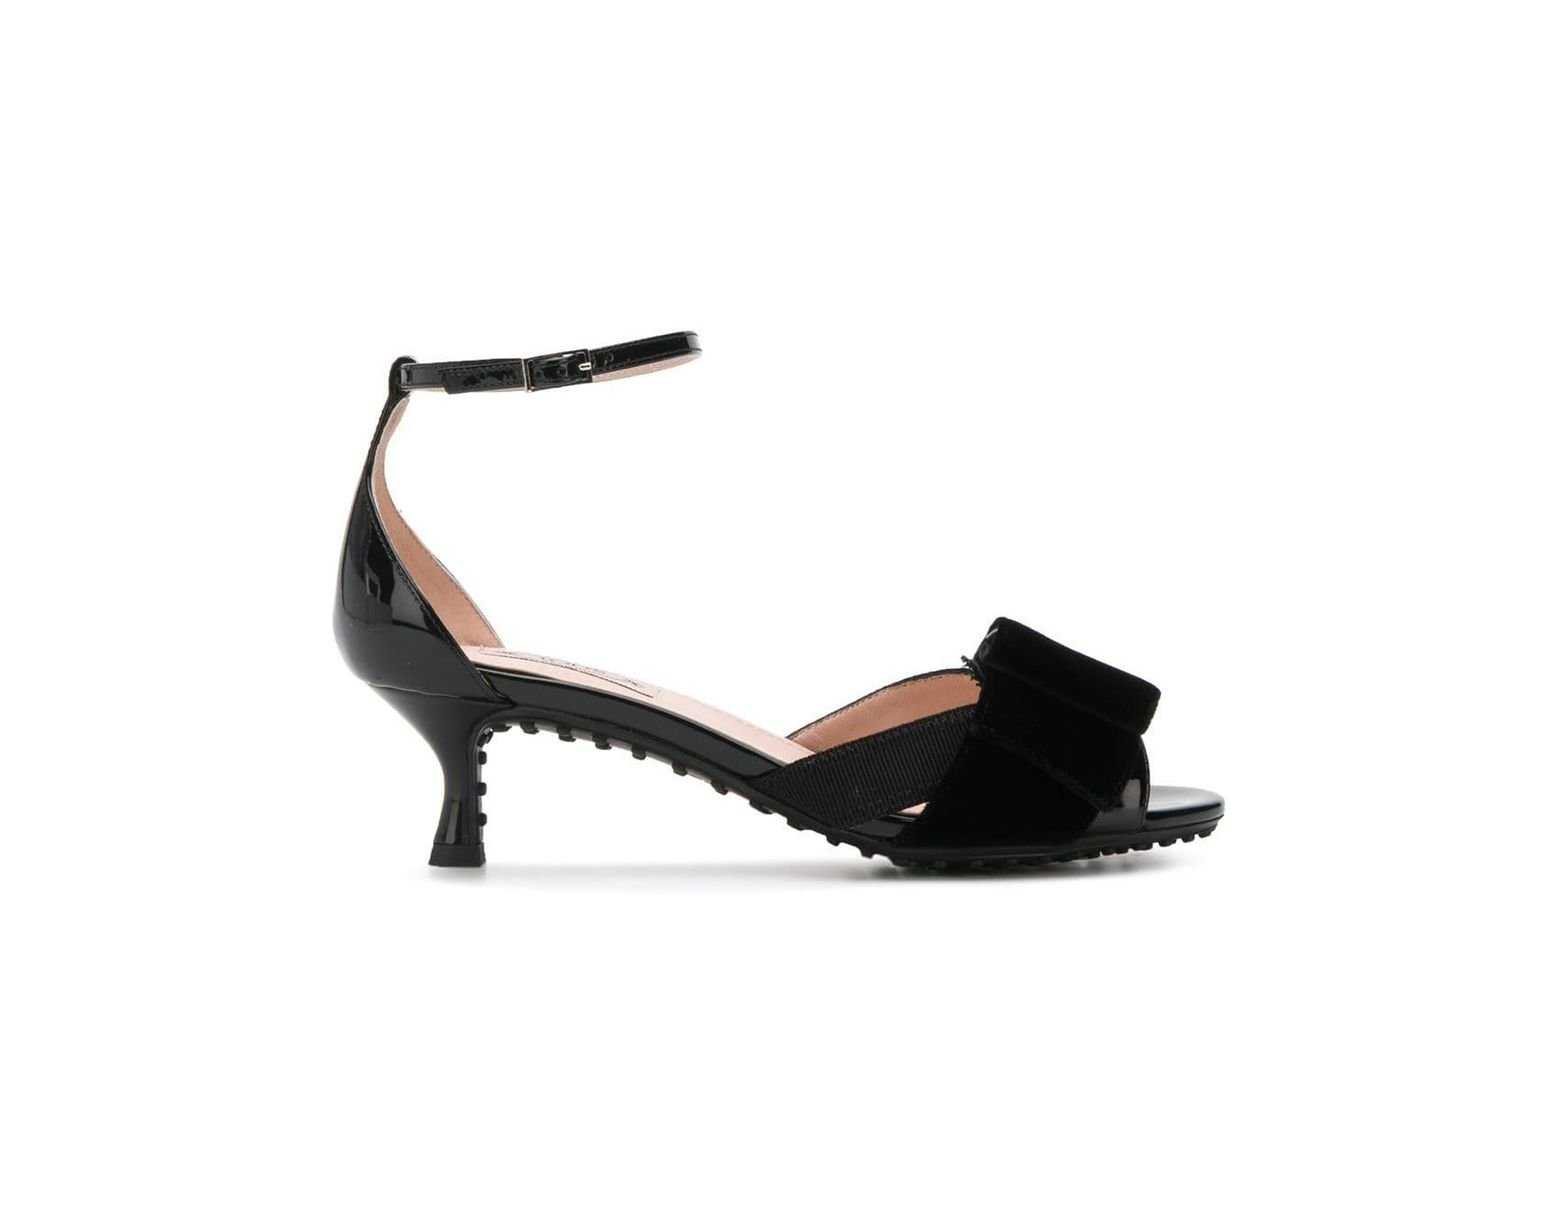 Bow With Ribbon Sandals Detail Black Women's A WI9YE2eDH